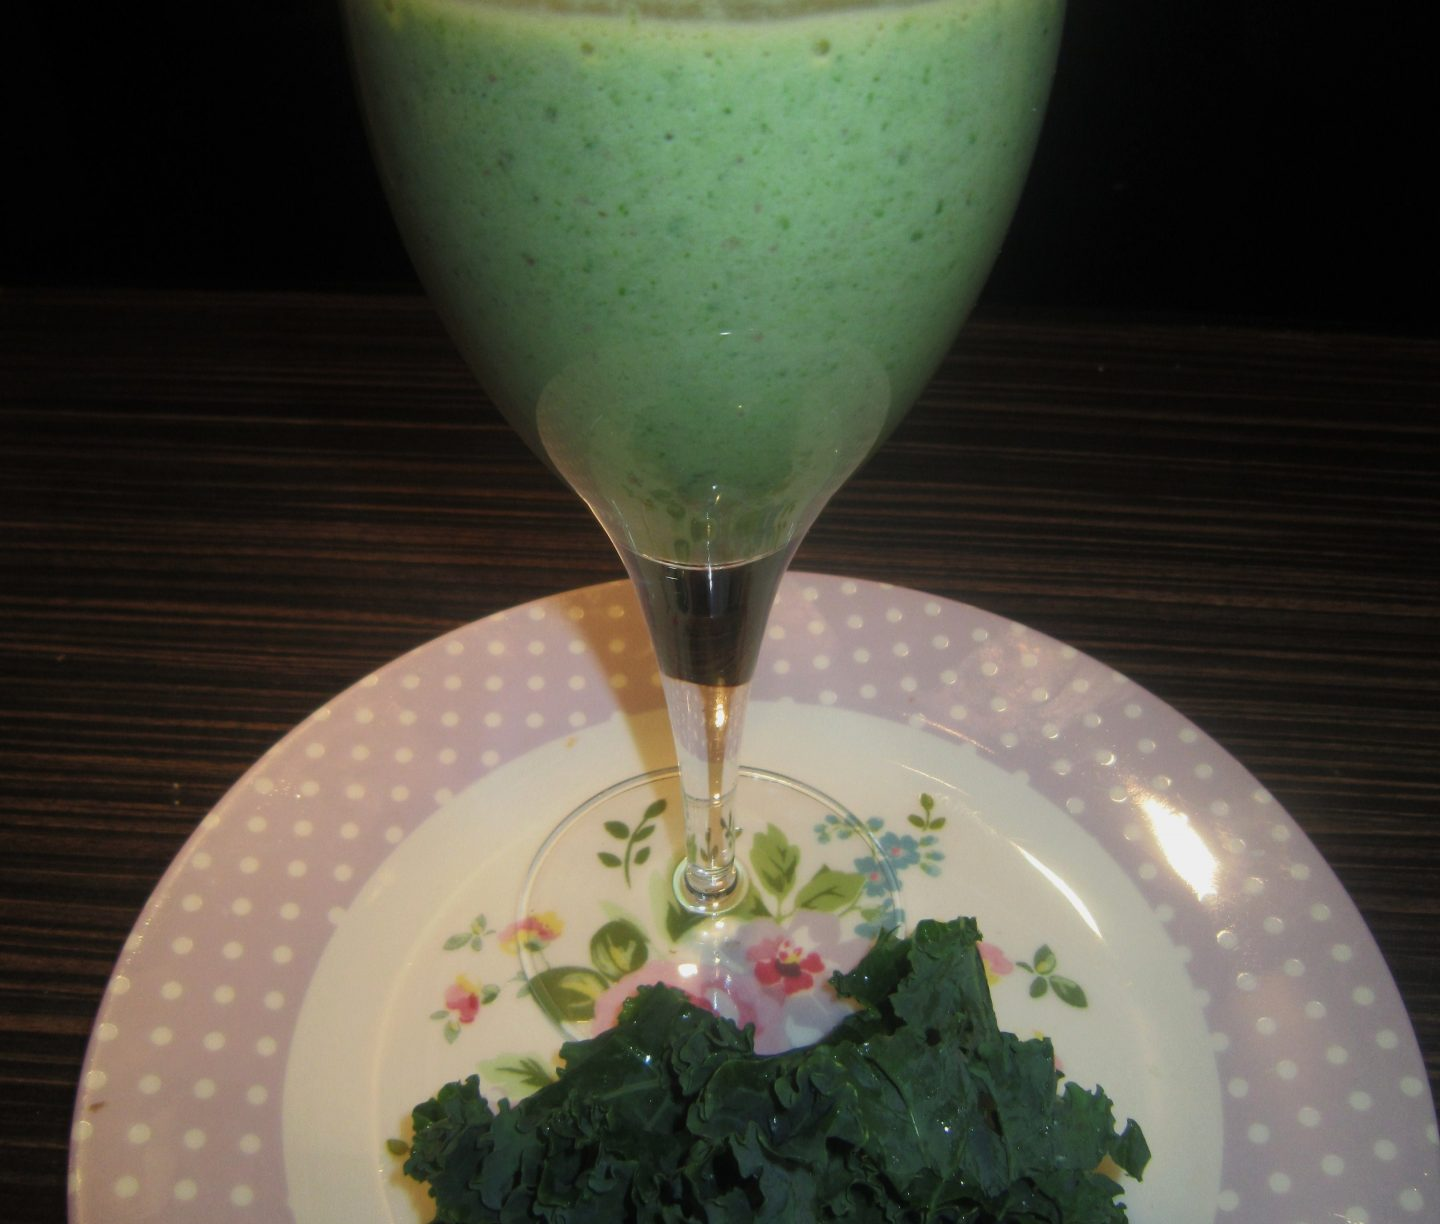 Post-Workout Kale Protein Smoothie